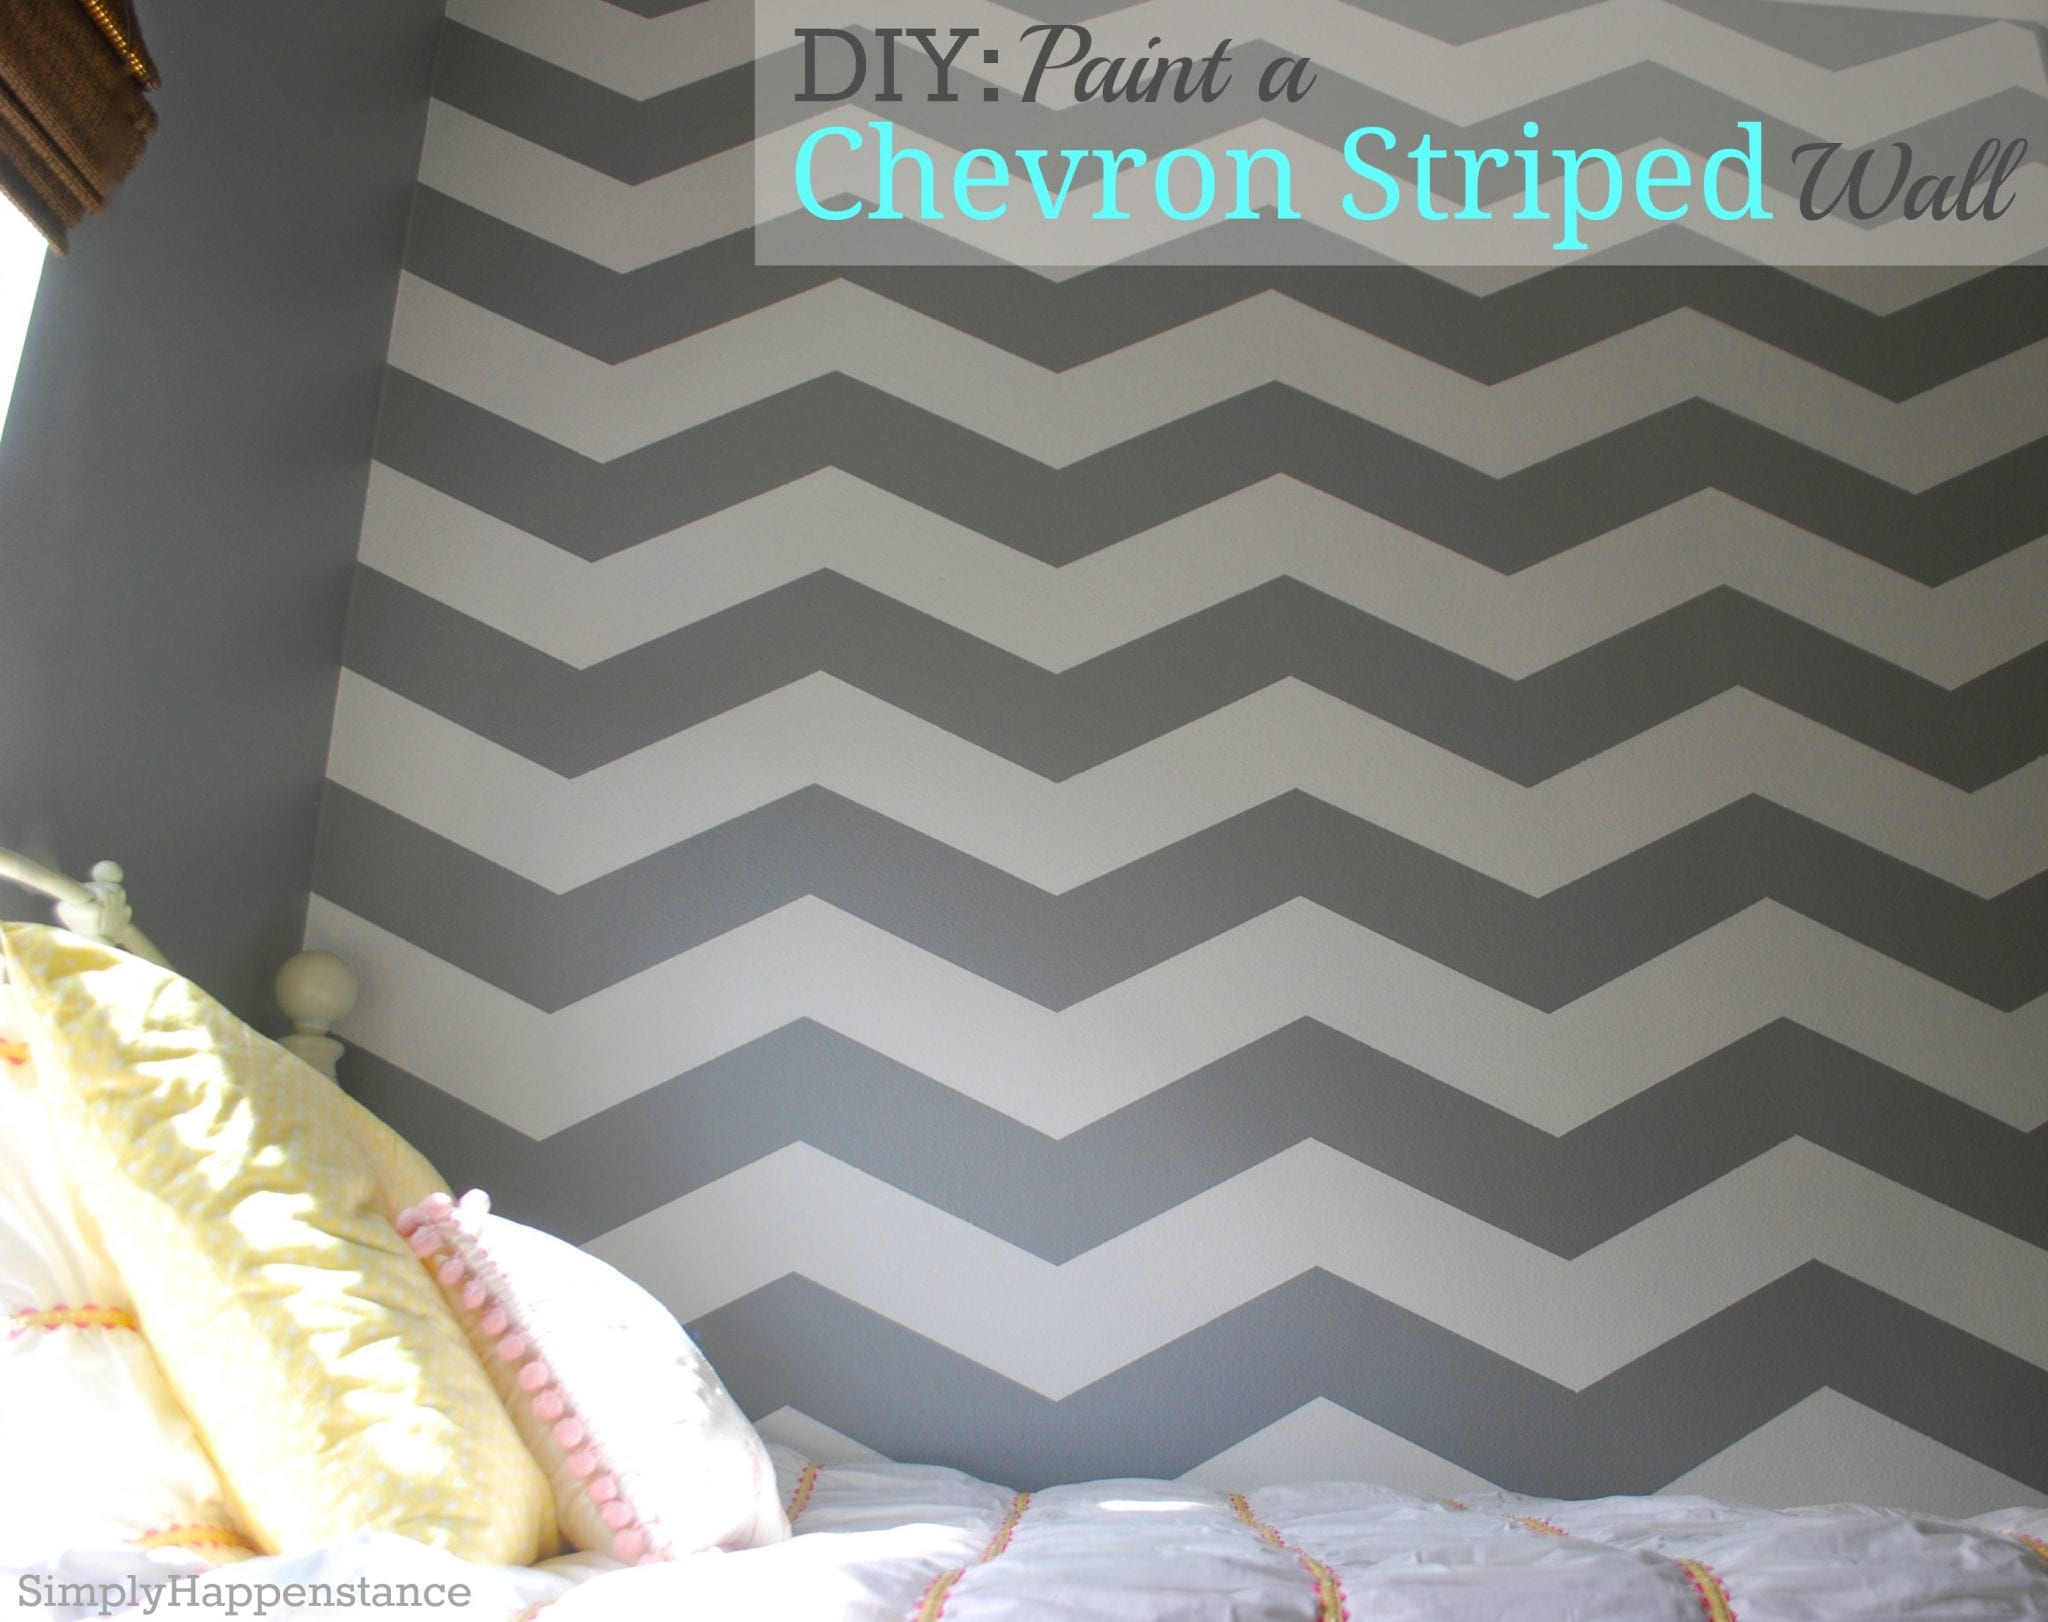 DIY: Paint a Chevron Striped Wall - Simply Happenstance